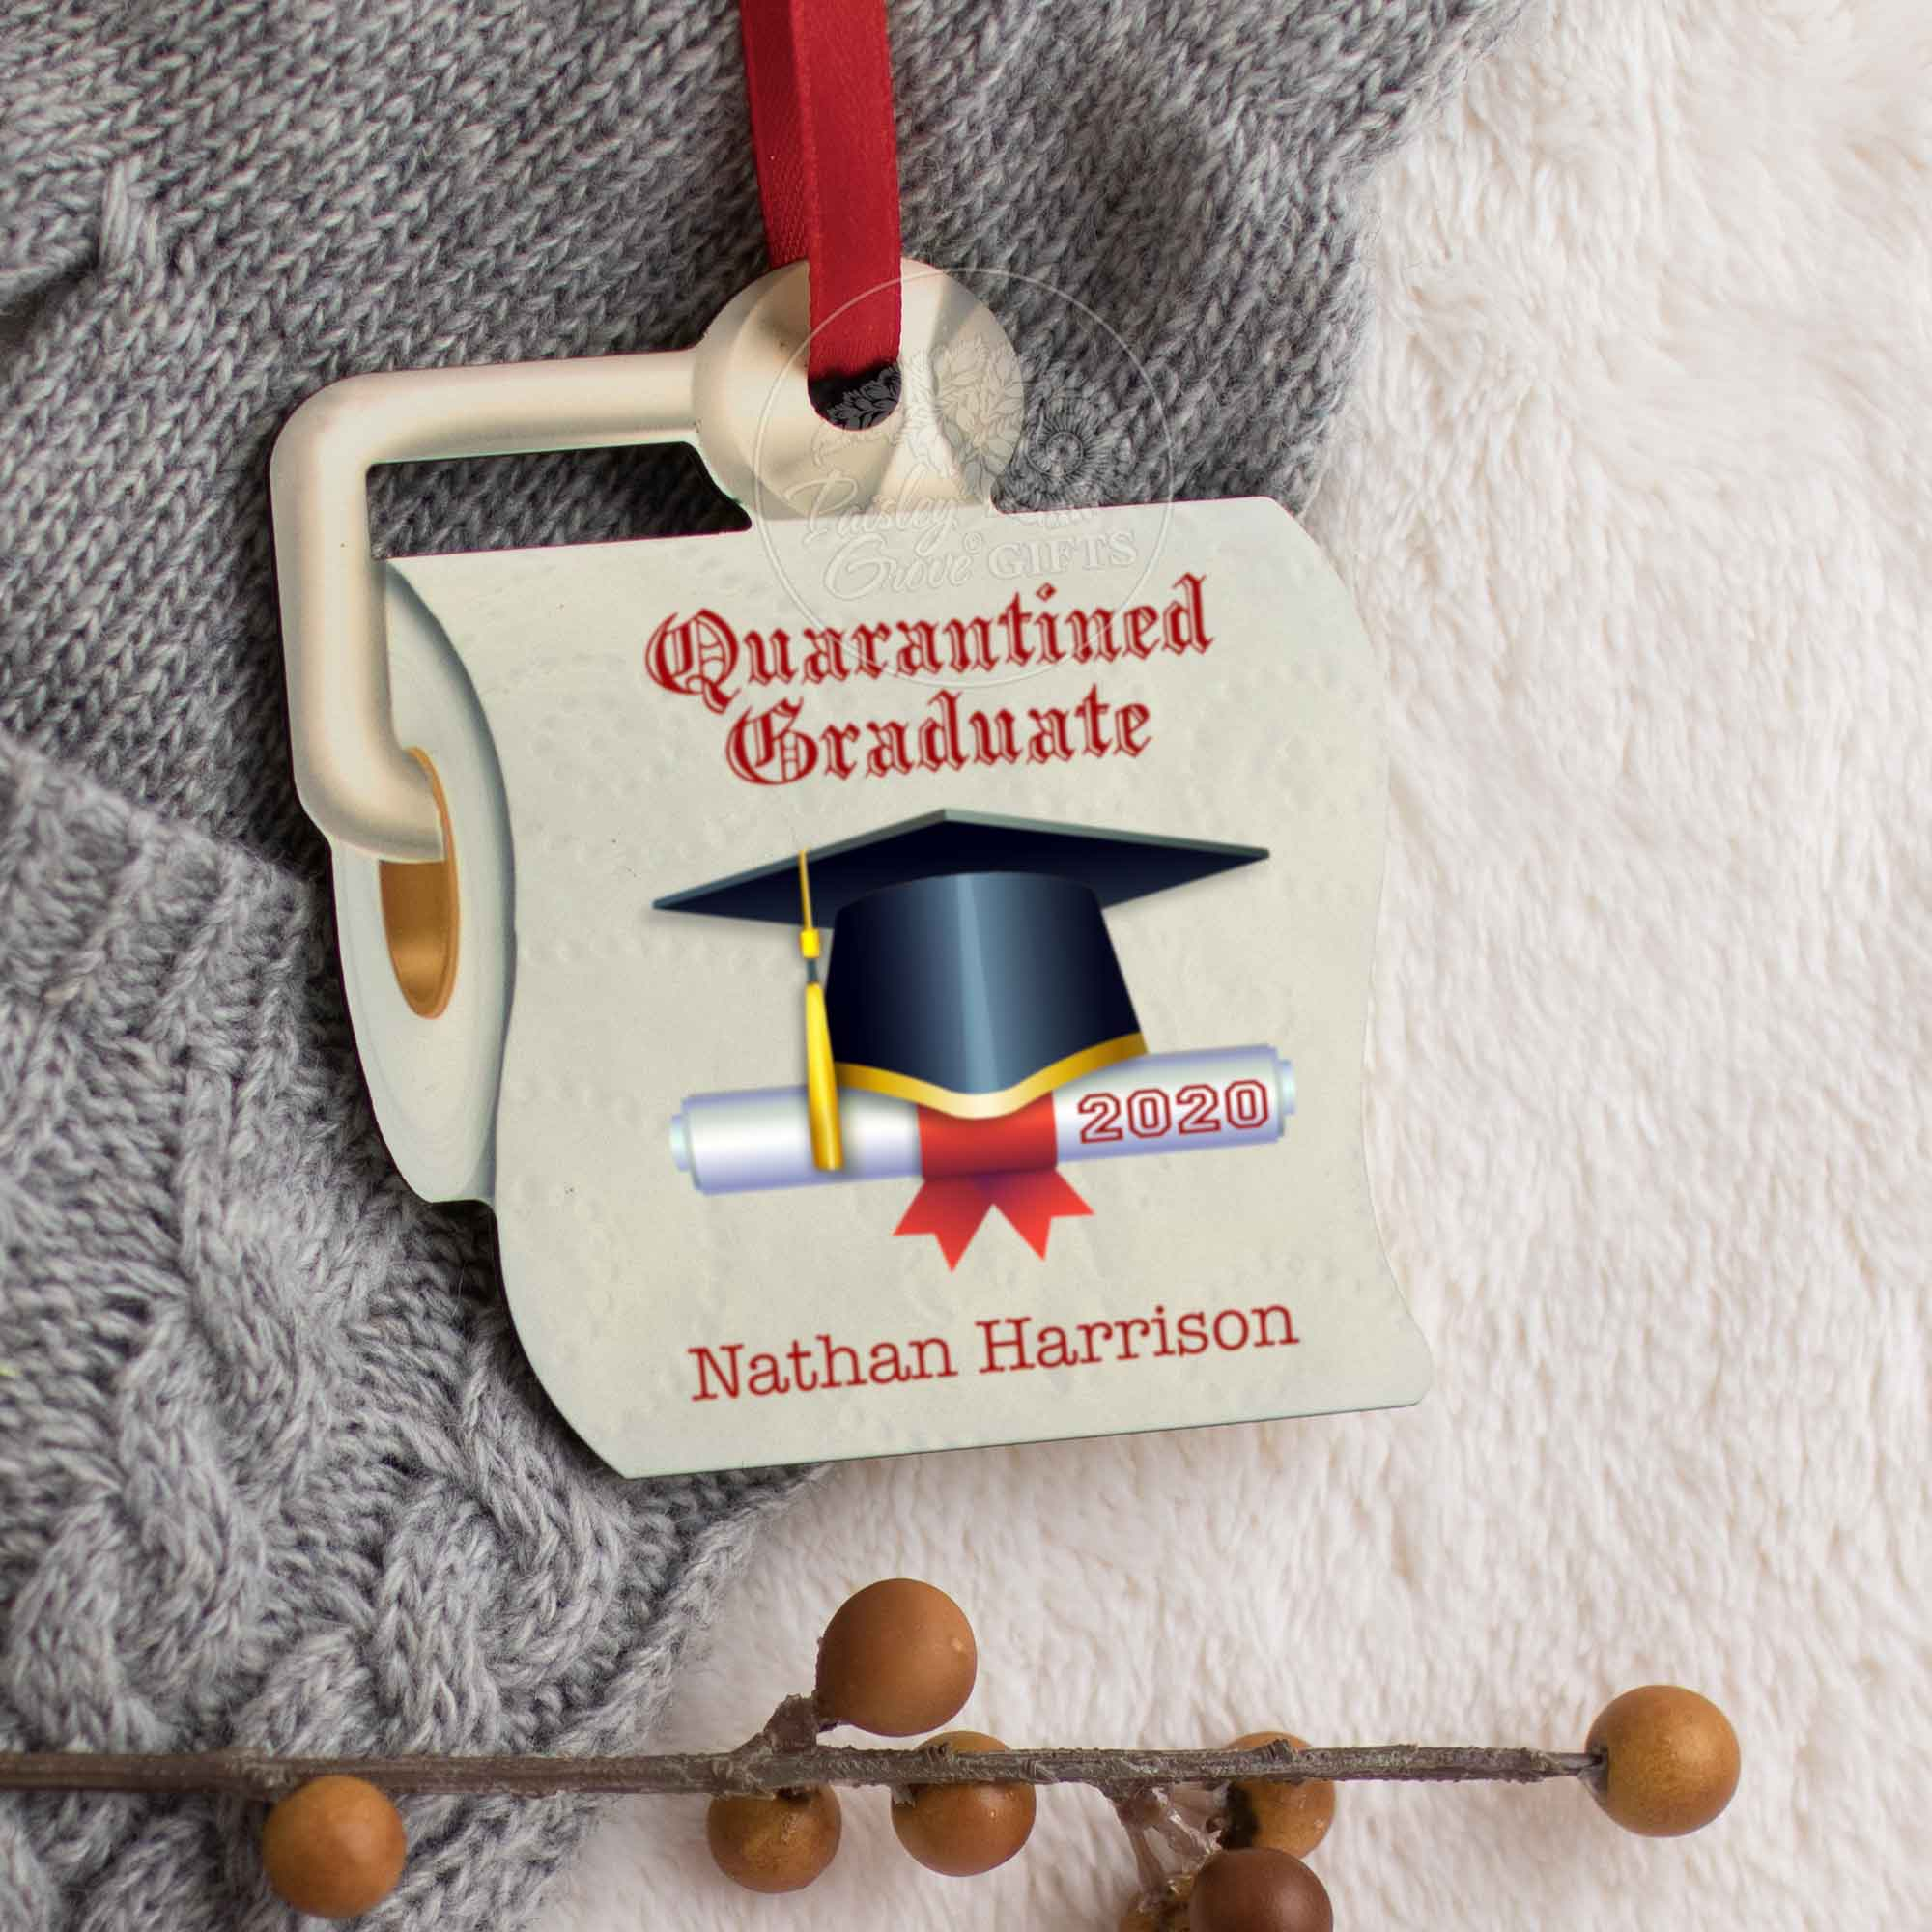 CopyrightPaisleyGroveGIFTS S525c1 Unique Christmas Ornament 2020 Quarantined Christmas Gift for Graduates